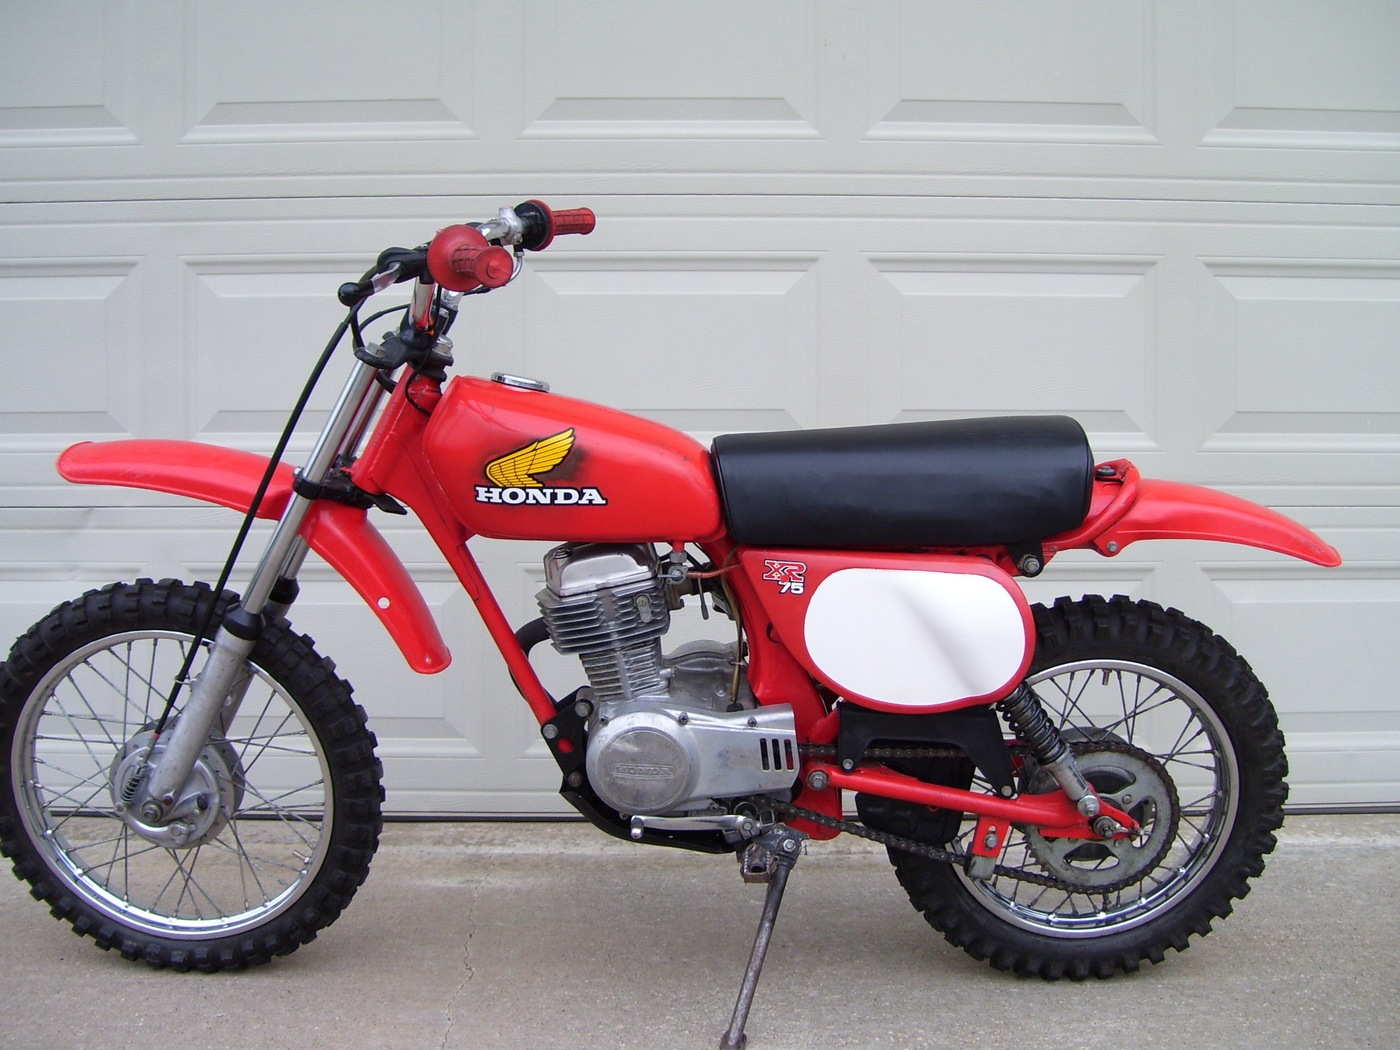 Honda Classic Motorcycles For Sale